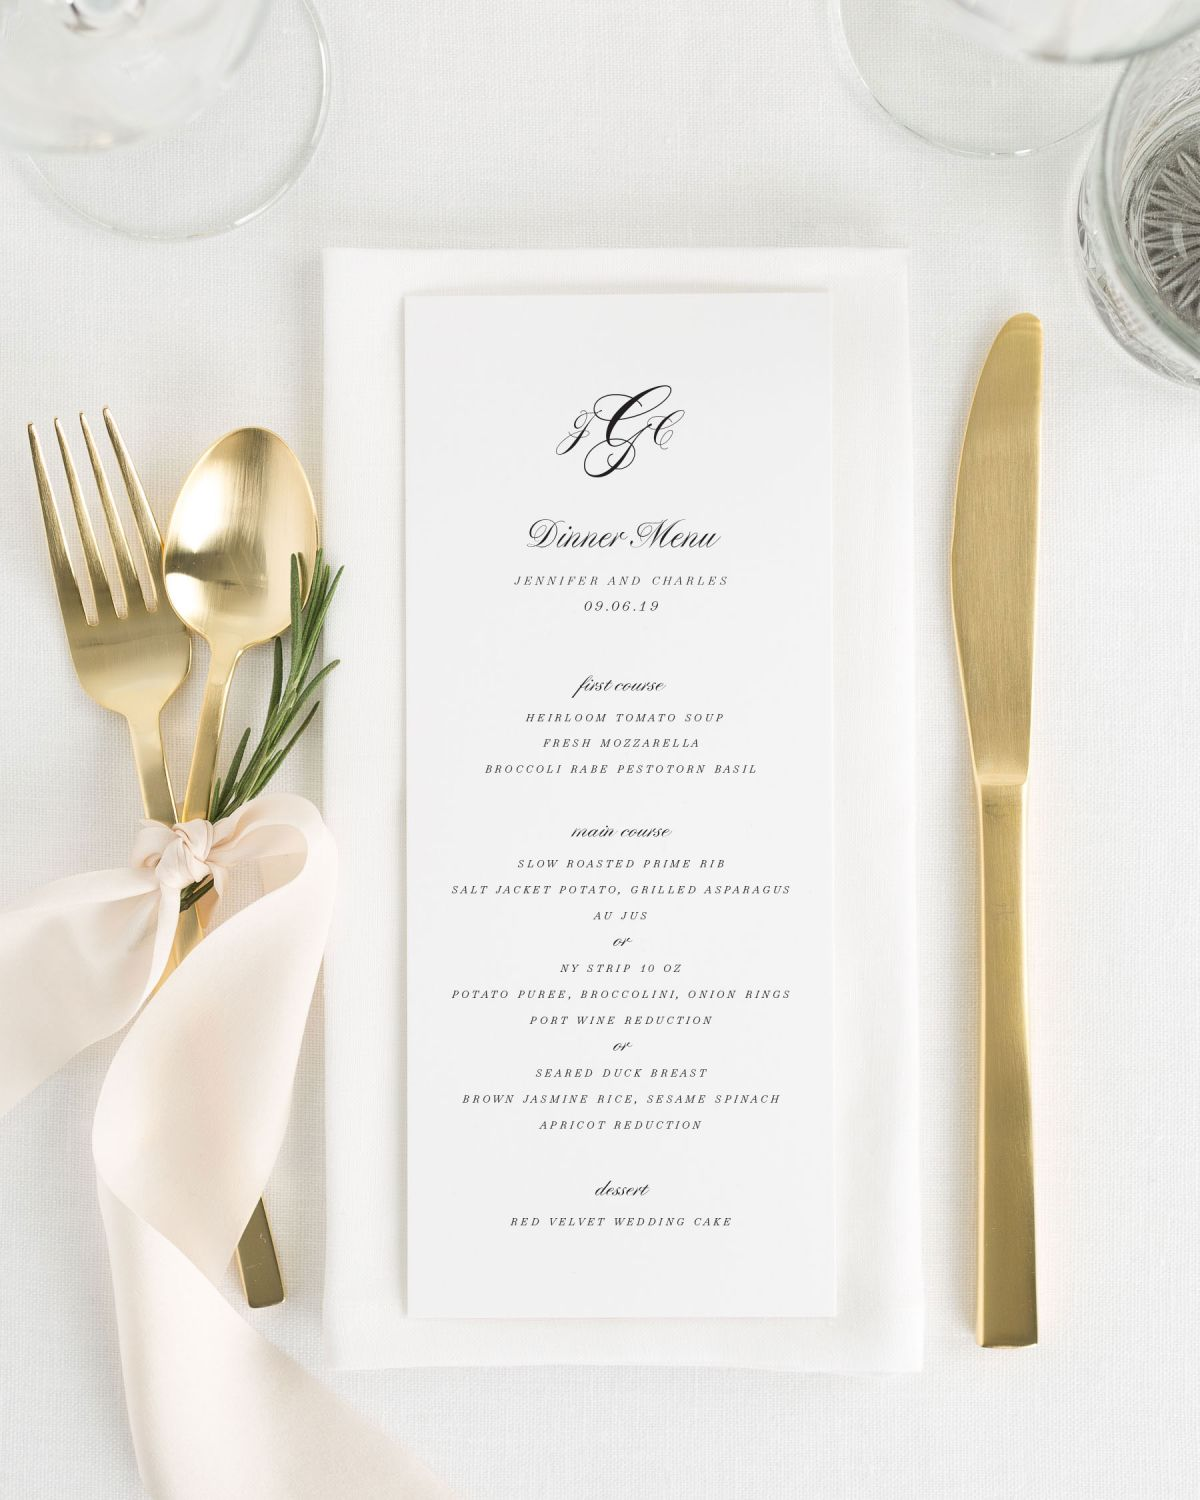 Monogram Dinner Menus